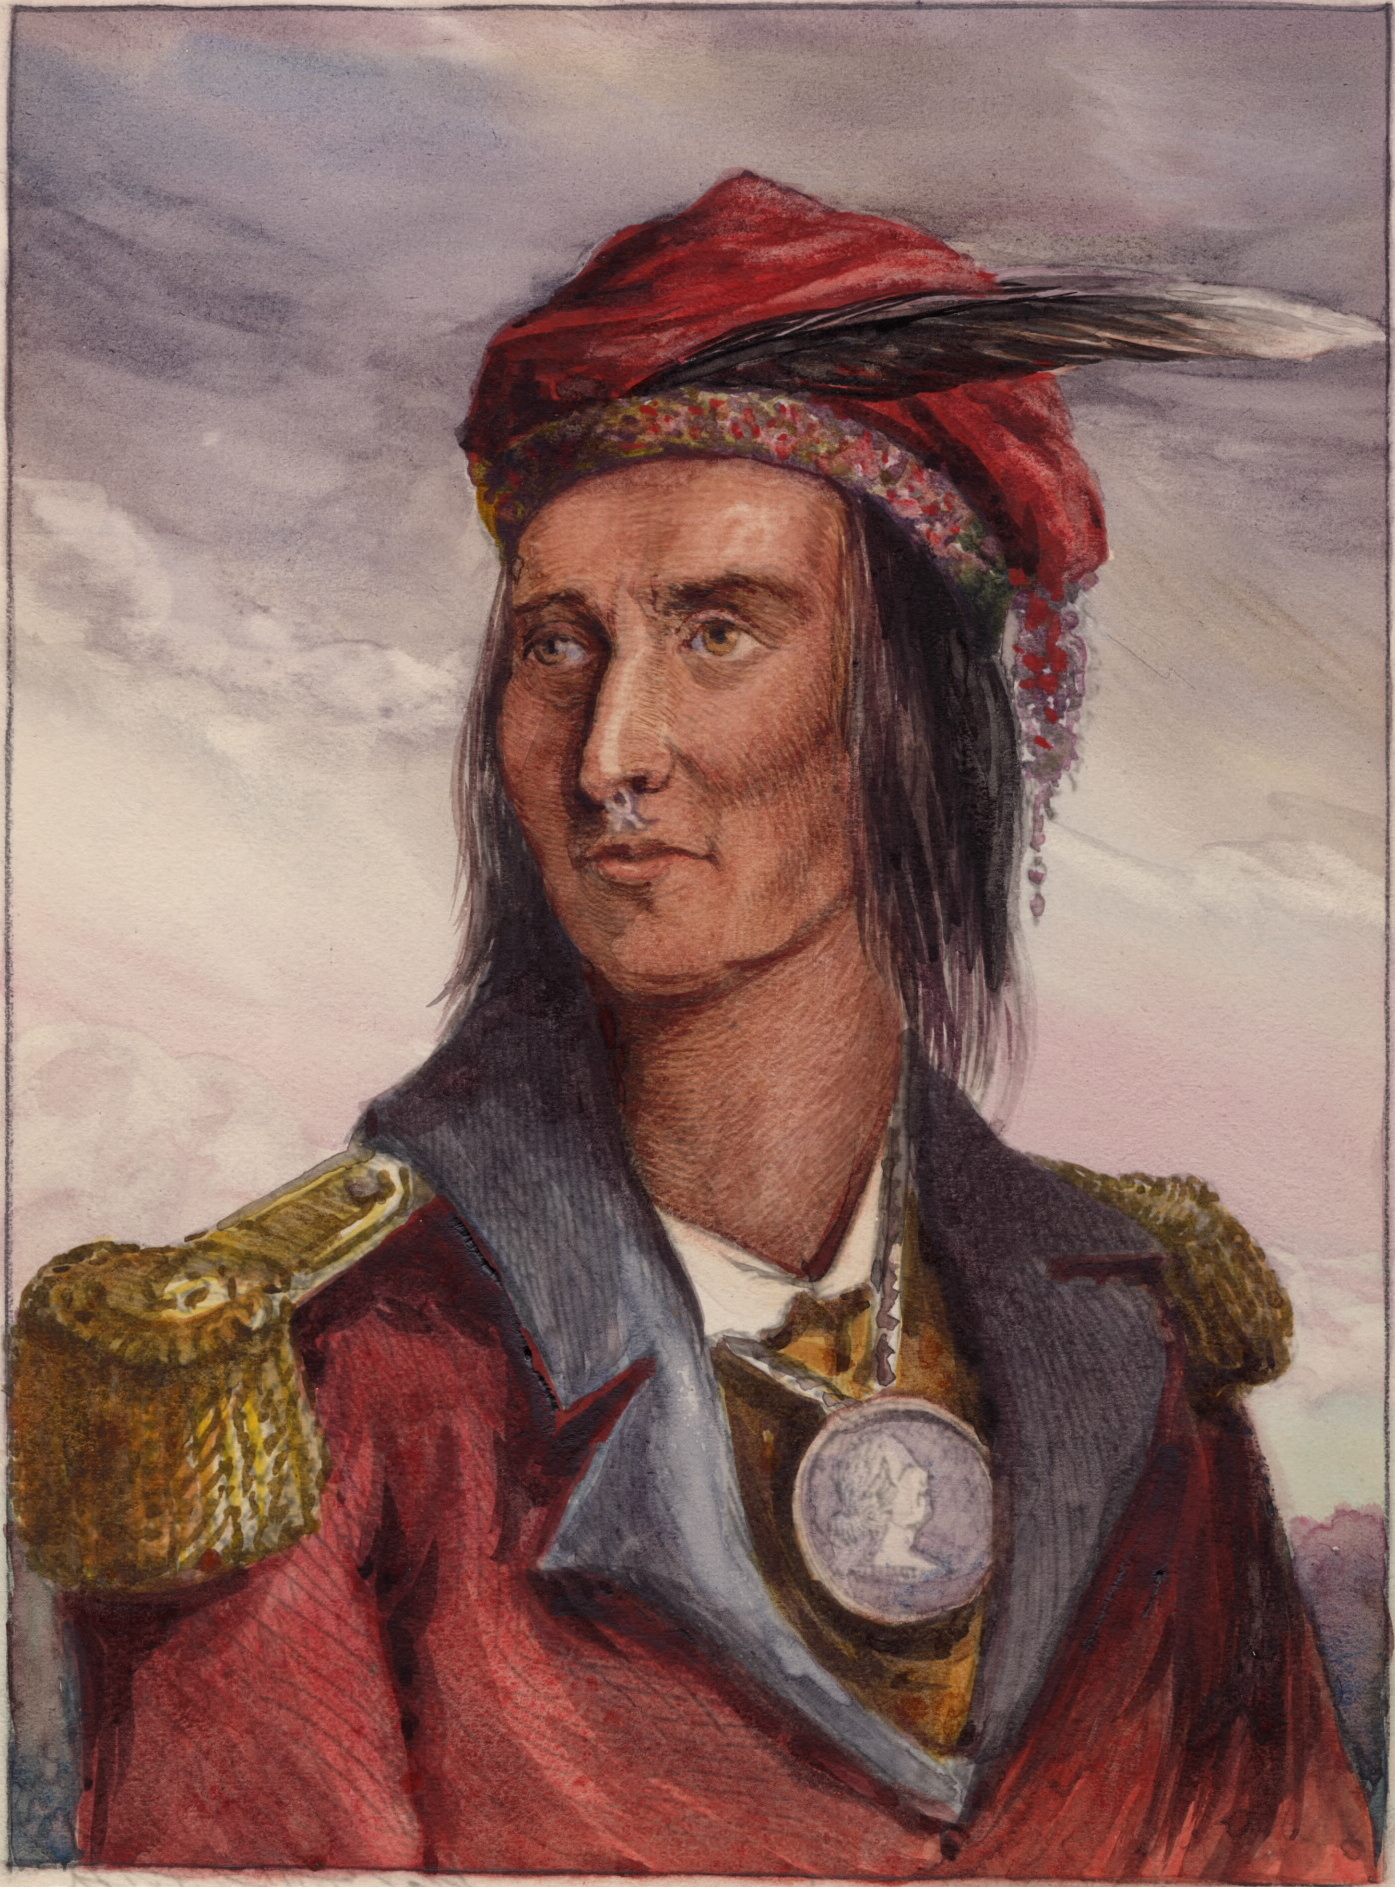 A colored version of Lossing's portrait of Tecumseh. No fully authenticated image of Tecumseh exists